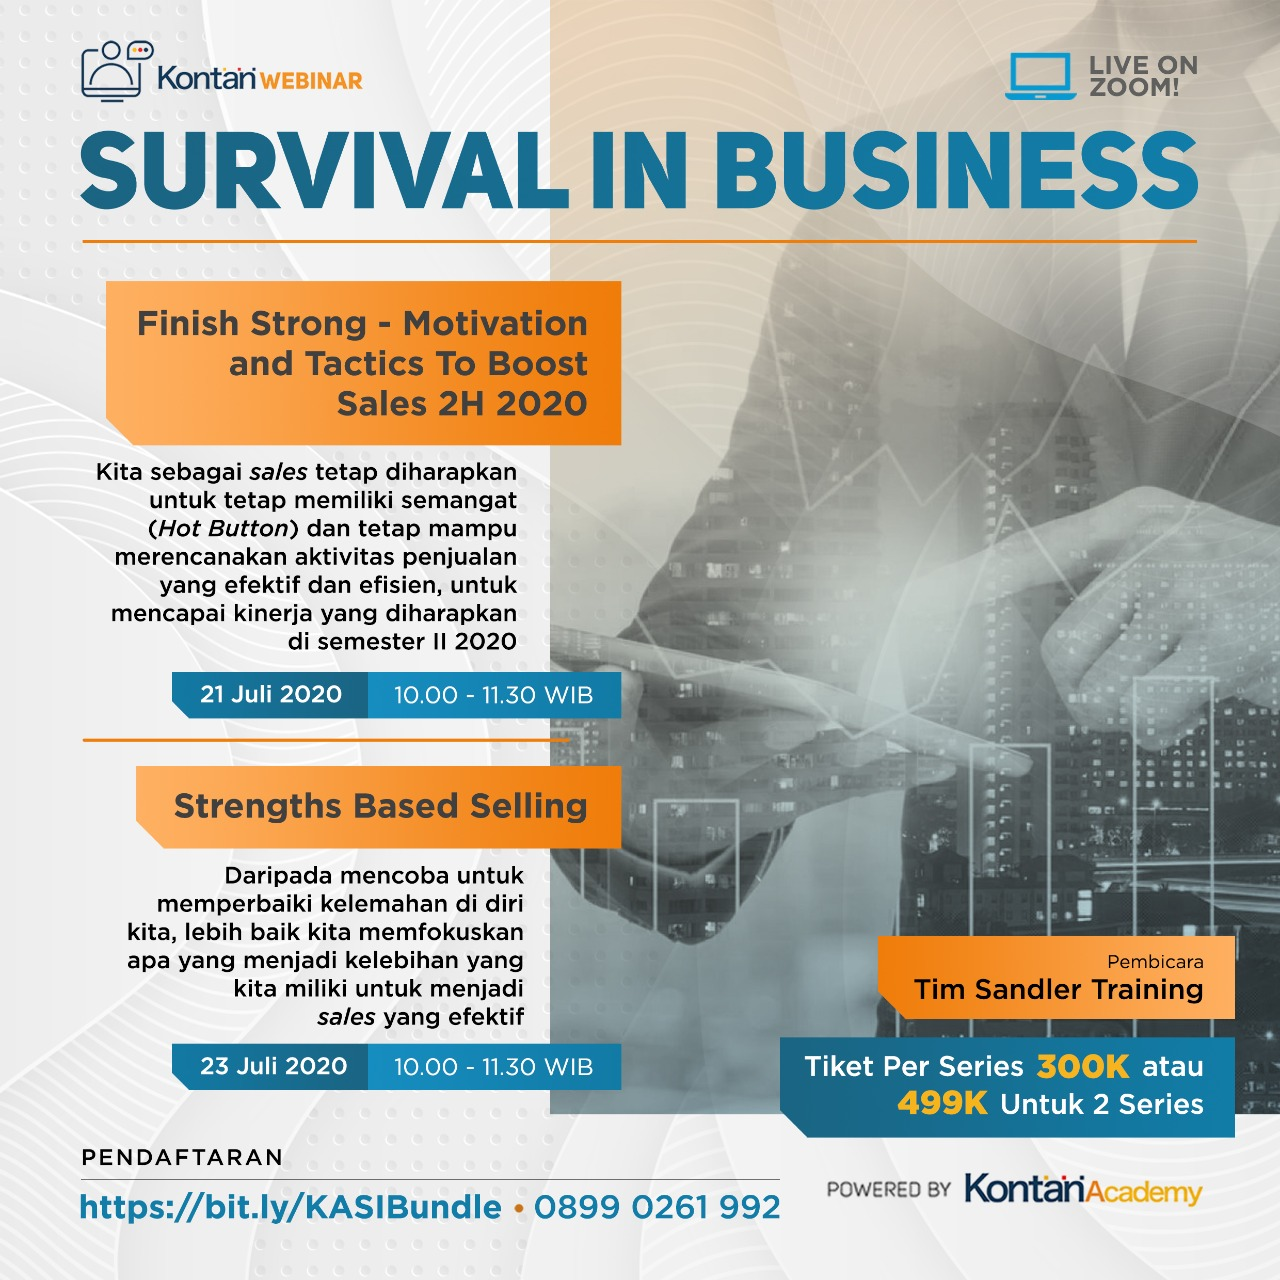 Survival in Business : Finish Strong - Motivation and Tactics To Boost Sales 2H 2020